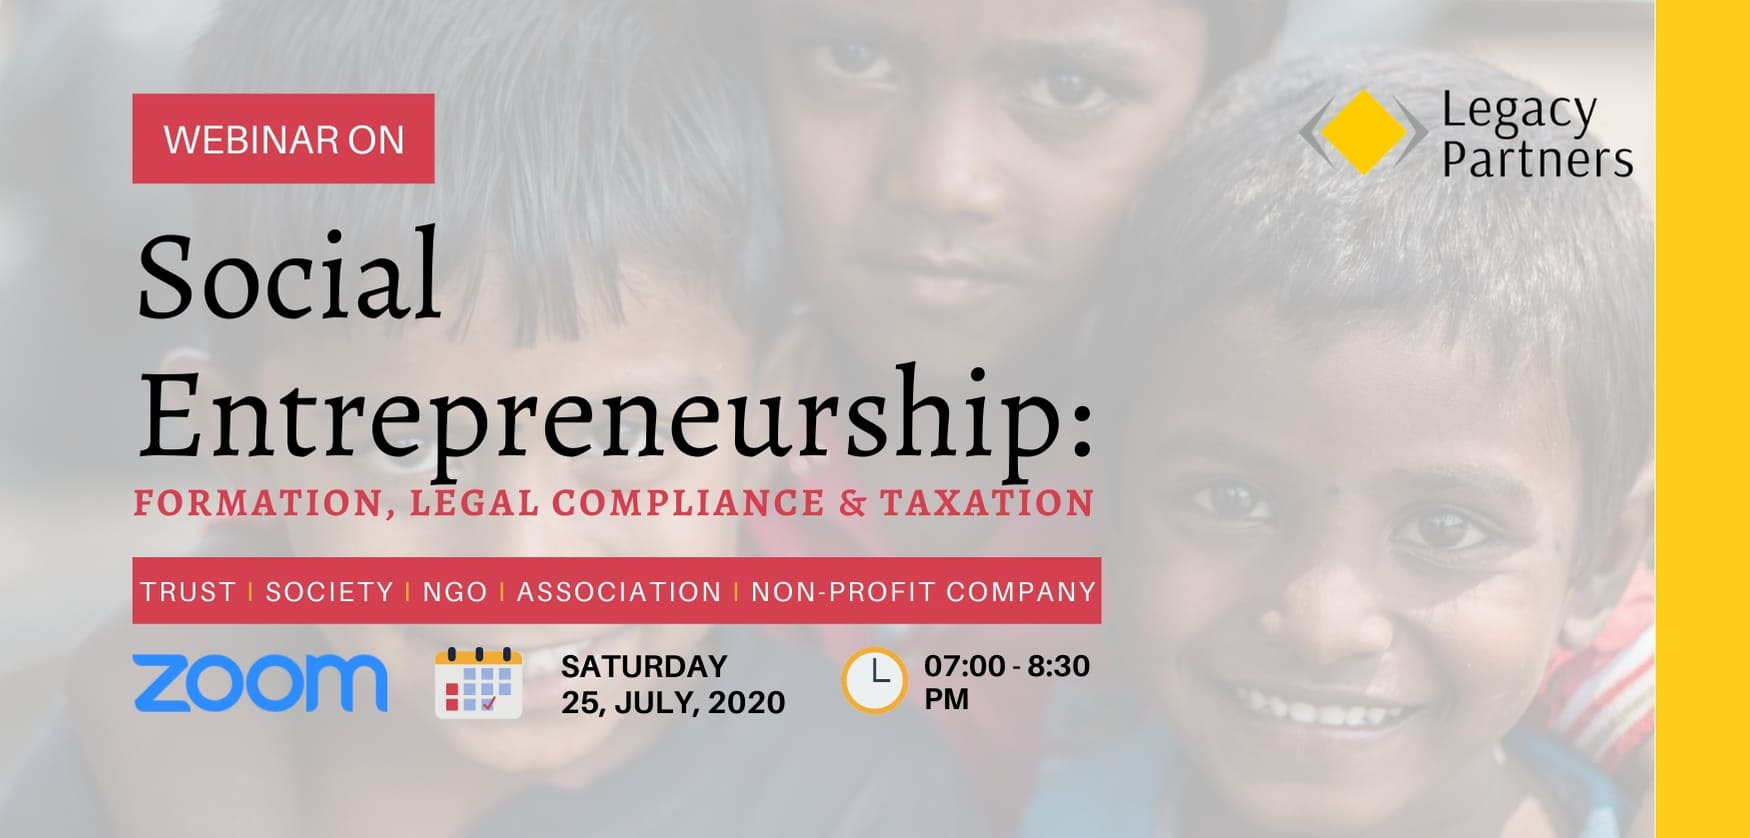 Webinar on Social Entrepreneurship: Formation, Legal Compliance and Taxation.